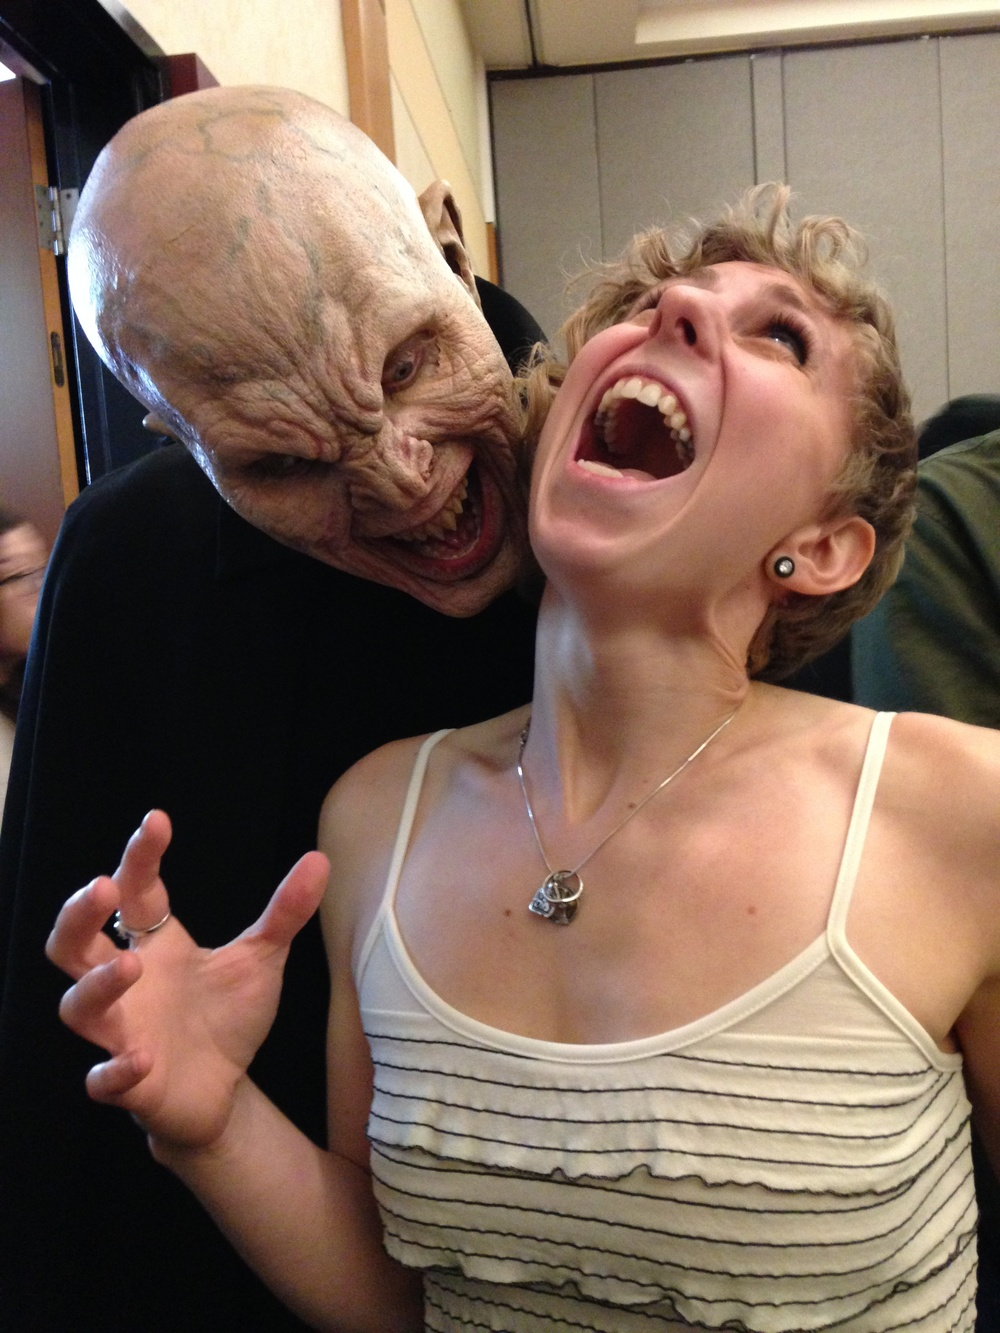 Matt Cable as The Master from Buffy the Vampire Slayer attacks Alexis!